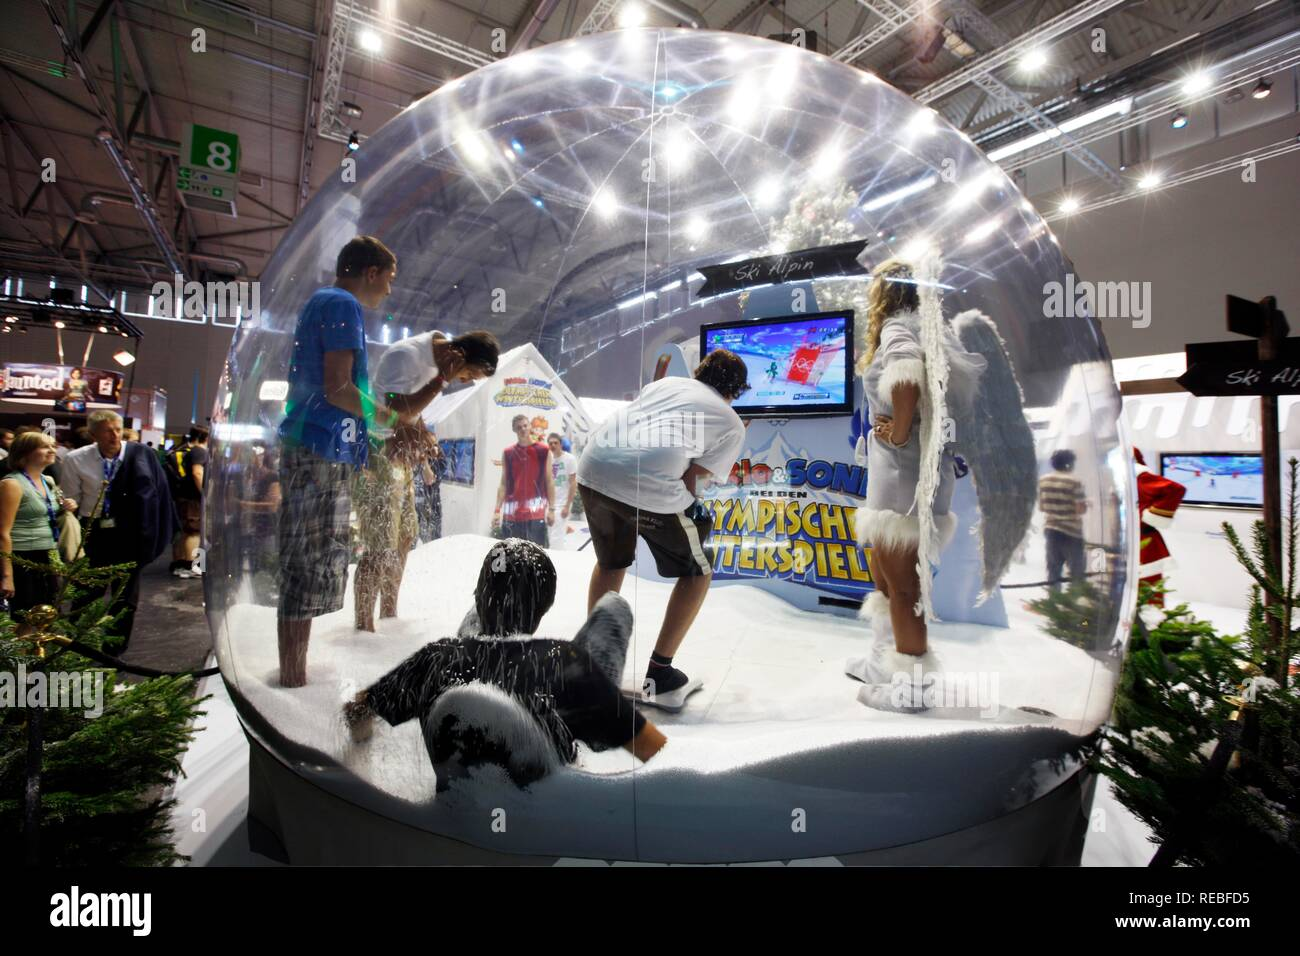 Nintendo Wii booth at the Entertainment Area of the Gamescom, the world's largest fair for computer games in the Messe Koeln - Stock Image